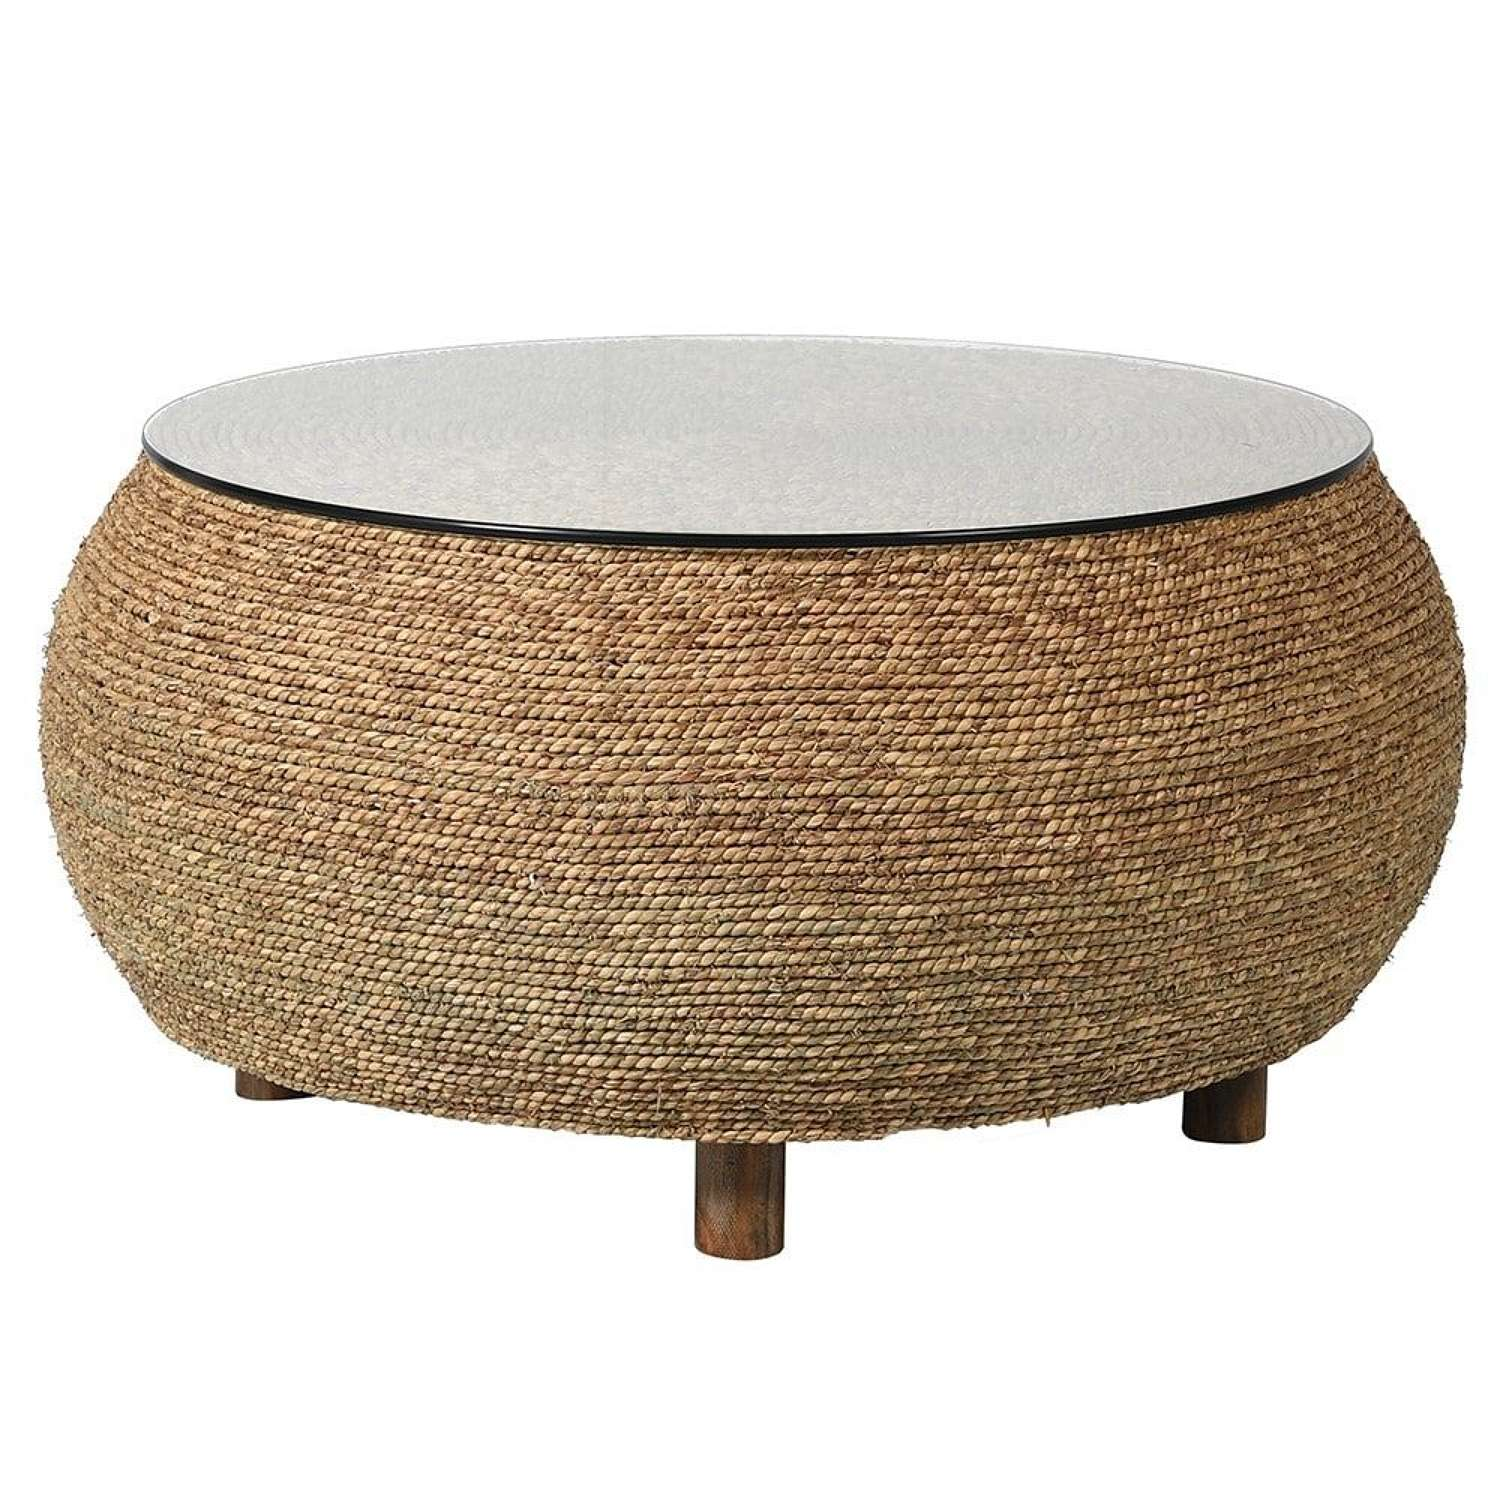 Round Seagrass Coffee Table with Glass Top